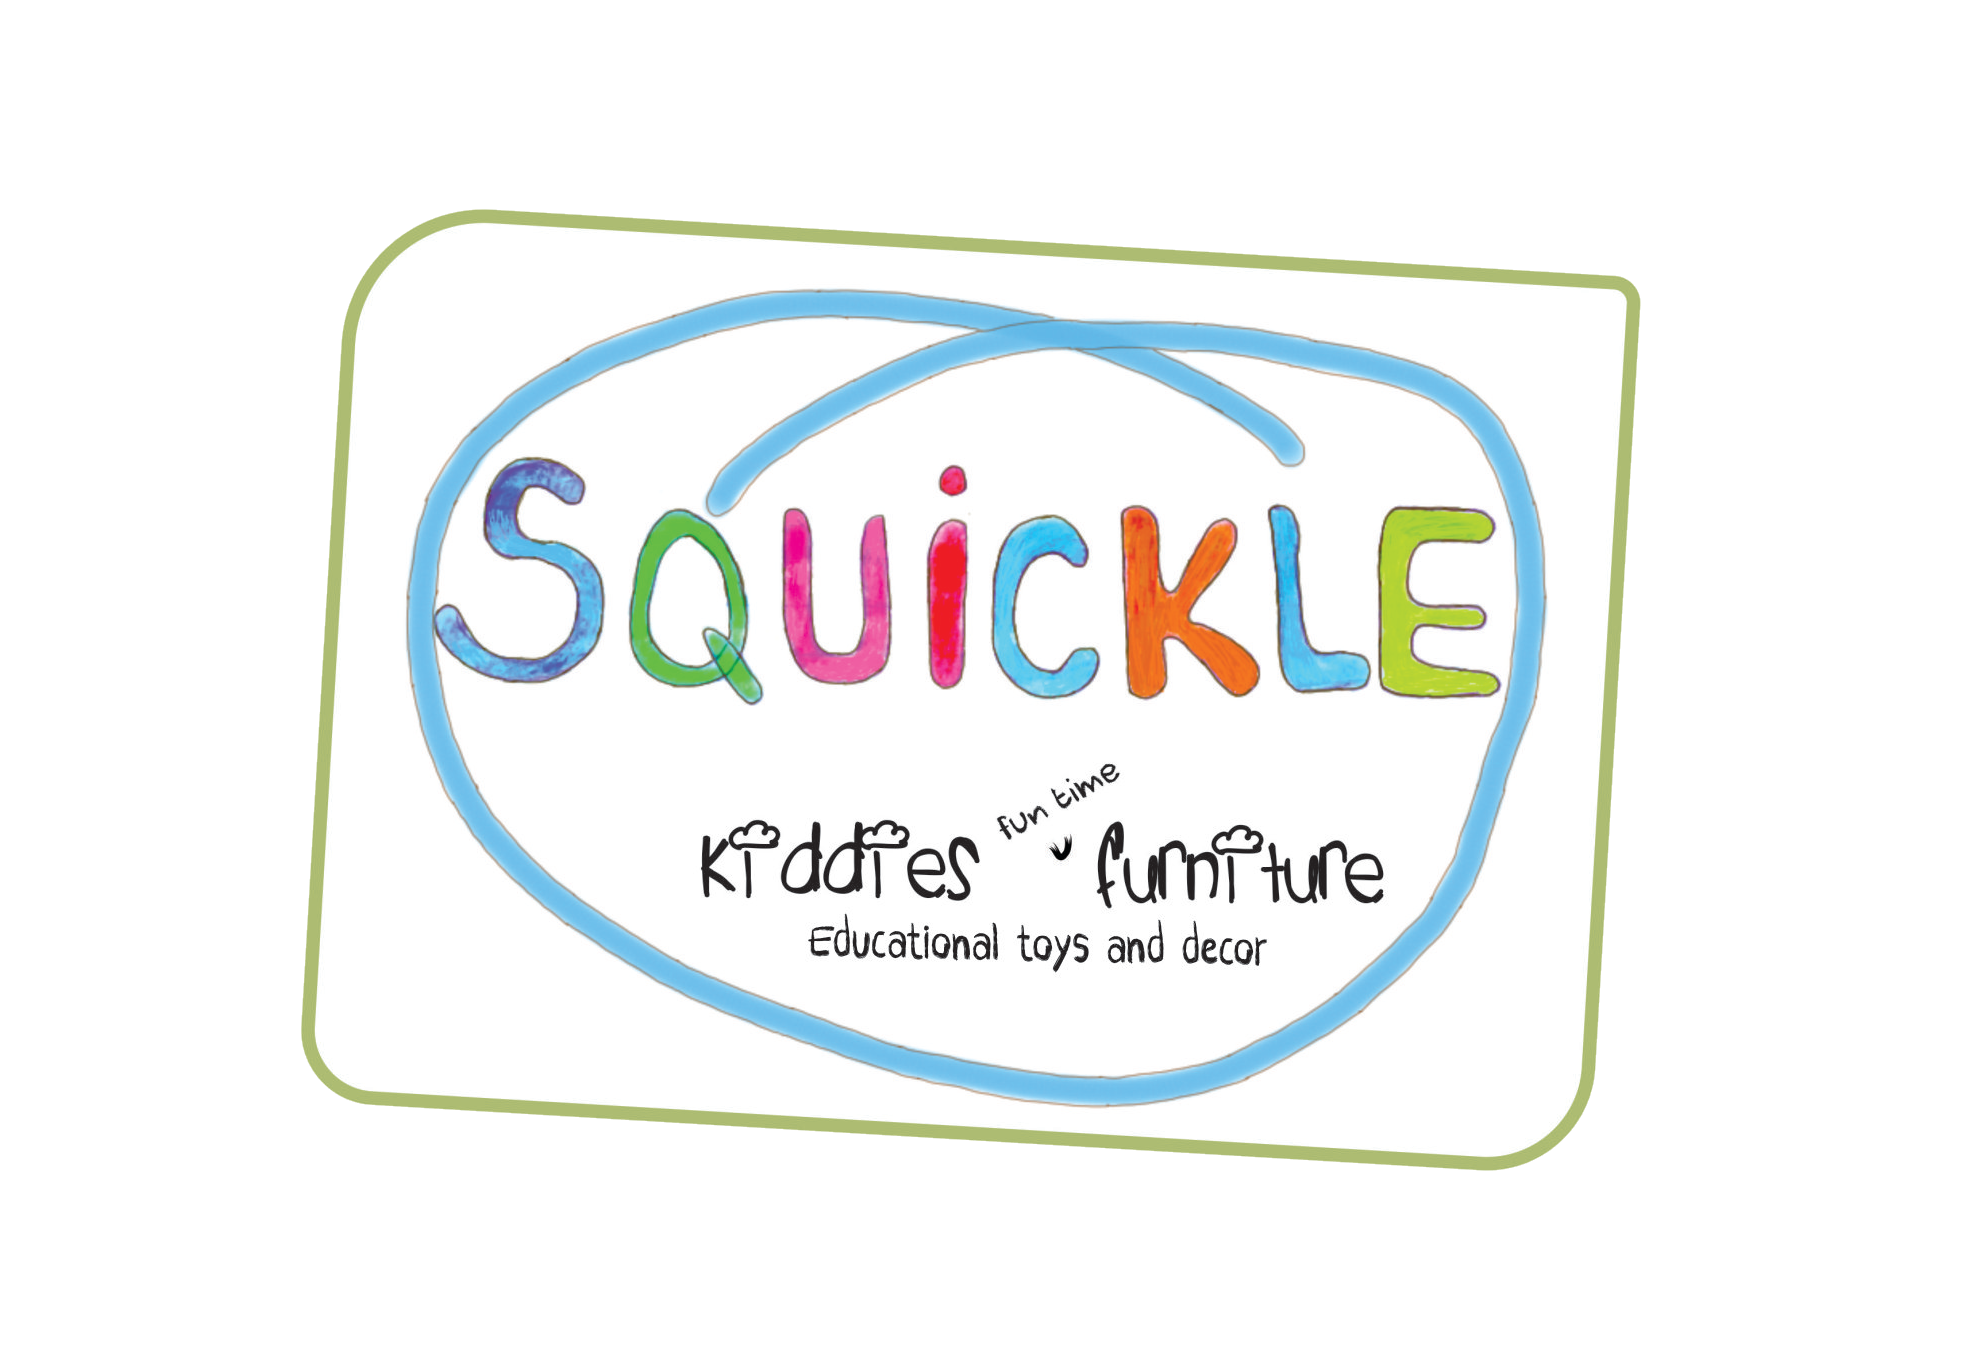 Squickle Logo new White trans background